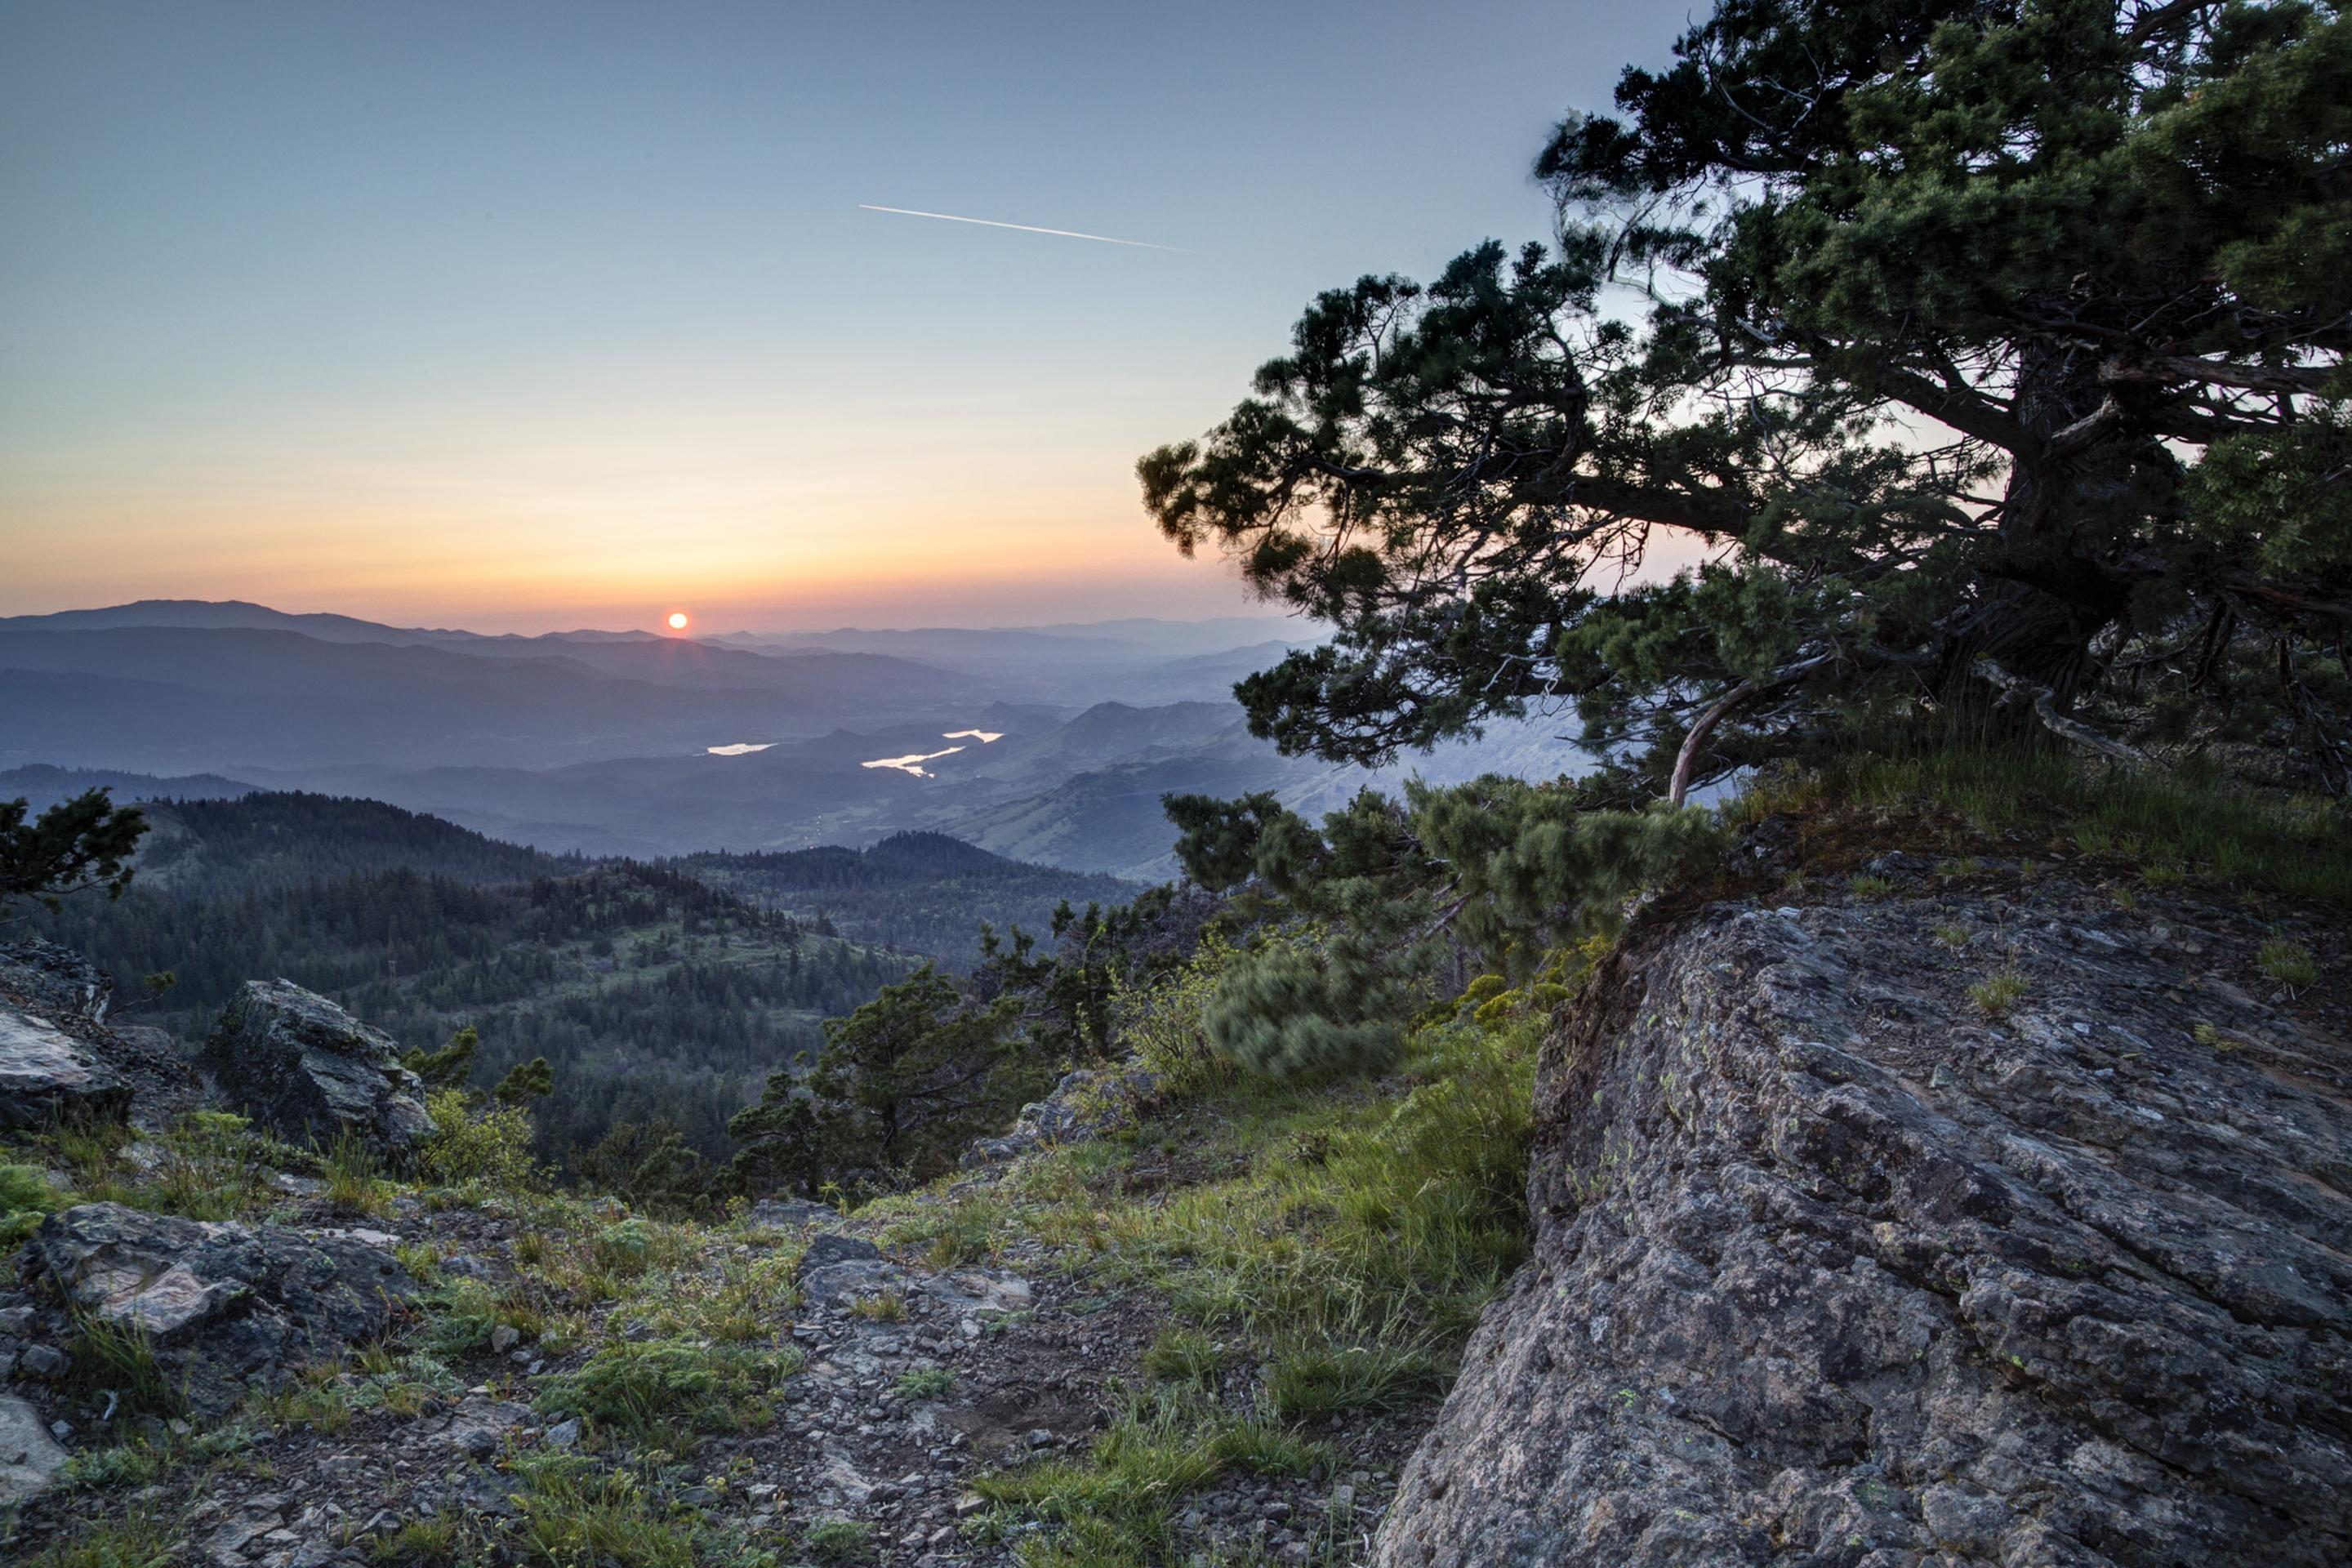 PCT views from Cascade-Siskiyou National Monument